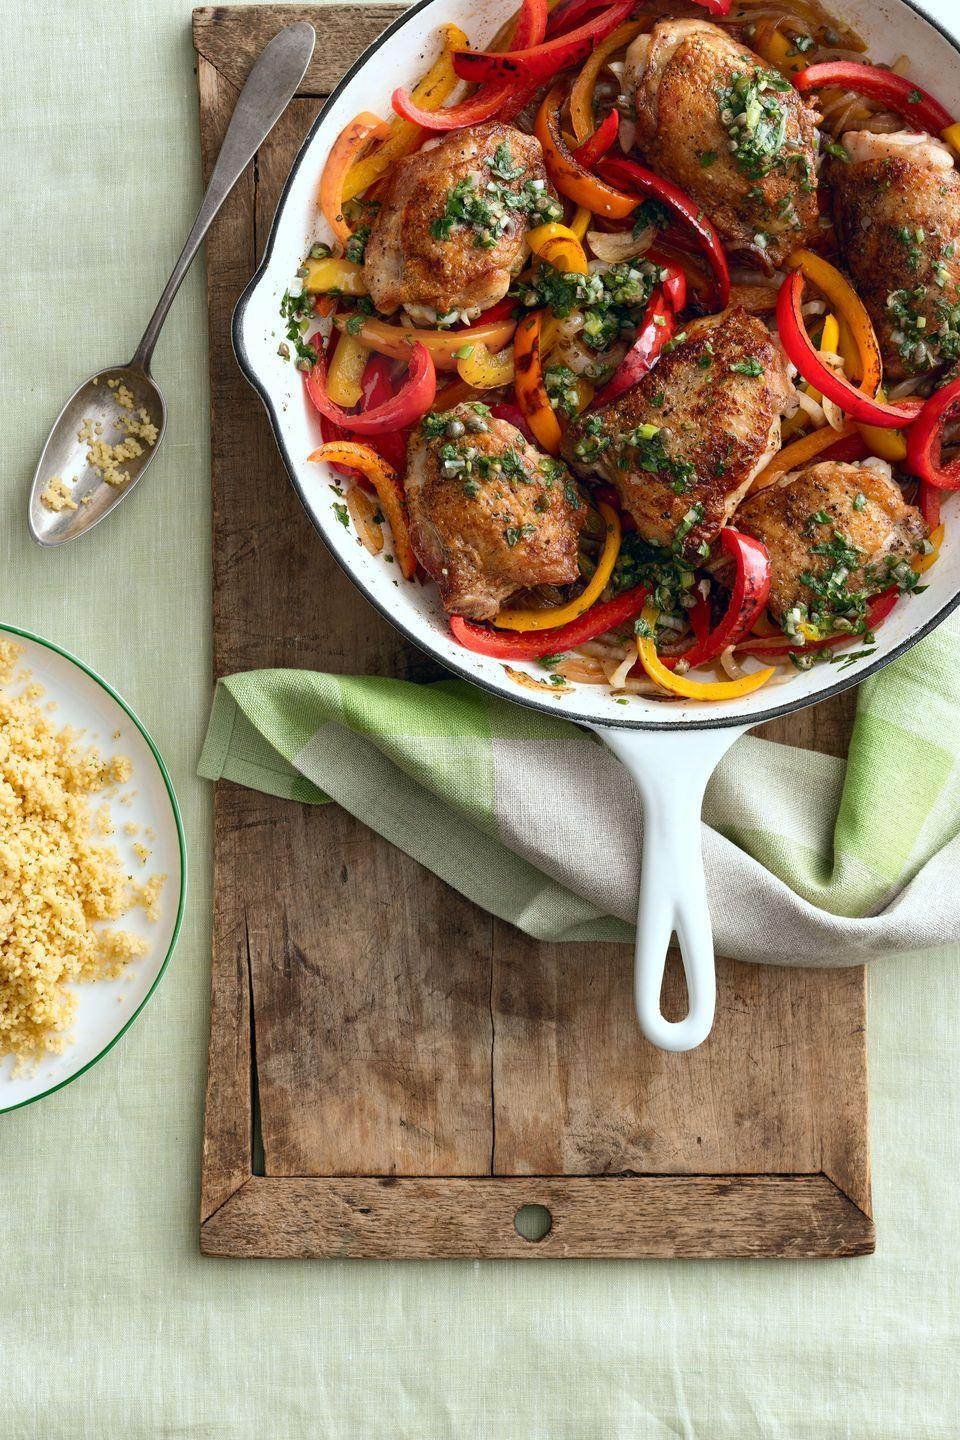 "<p>Spice up your weeknight dinner with this quick and easy chicken recipe.</p><p><strong><a href=""https://www.countryliving.com/food-drinks/recipes/a5501/crispy-chicken-thighs-with-peppers-and-salsa-verde-recipe-clx0914/"" rel=""nofollow noopener"" target=""_blank"" data-ylk=""slk:Get the recipe."" class=""link rapid-noclick-resp"">Get the recipe.</a></strong> </p>"